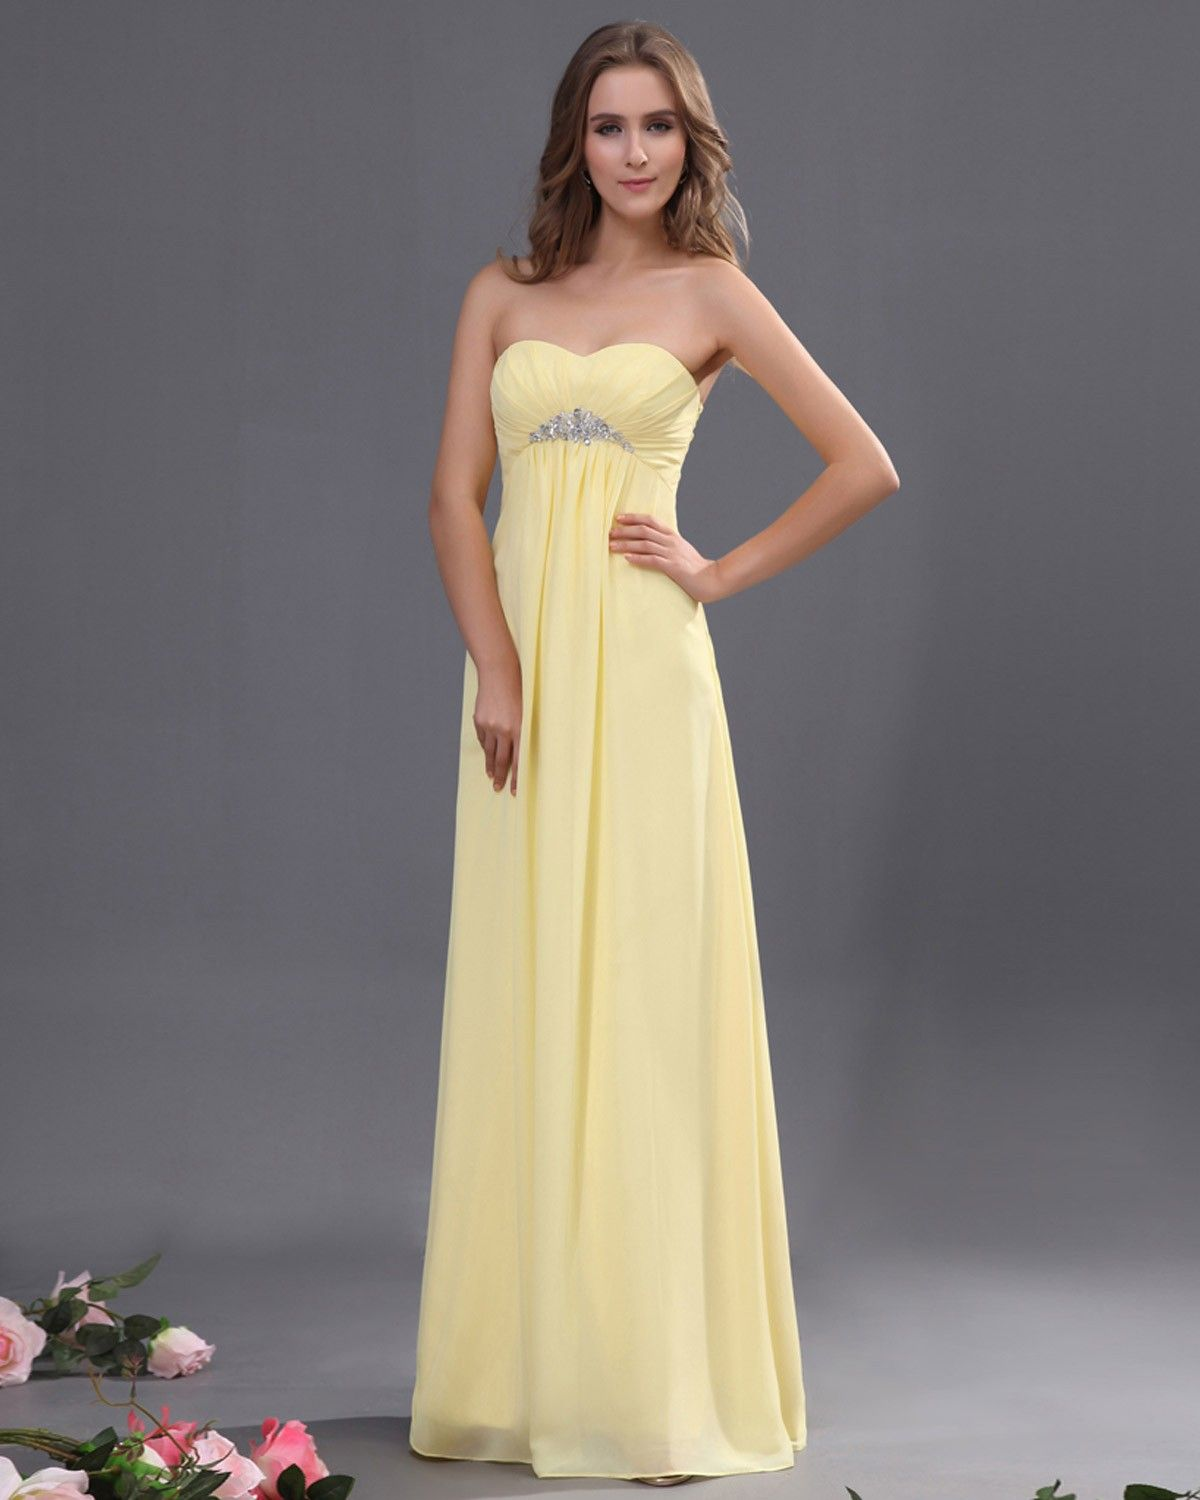 Yellow and grey evening dress prom dresses prom dresses 2013 sweetheart chiffon ruffle floor length bridesmaid dress with beadingis is such a pretty bridesmaid dress if i could get it in turquoise ombrellifo Gallery